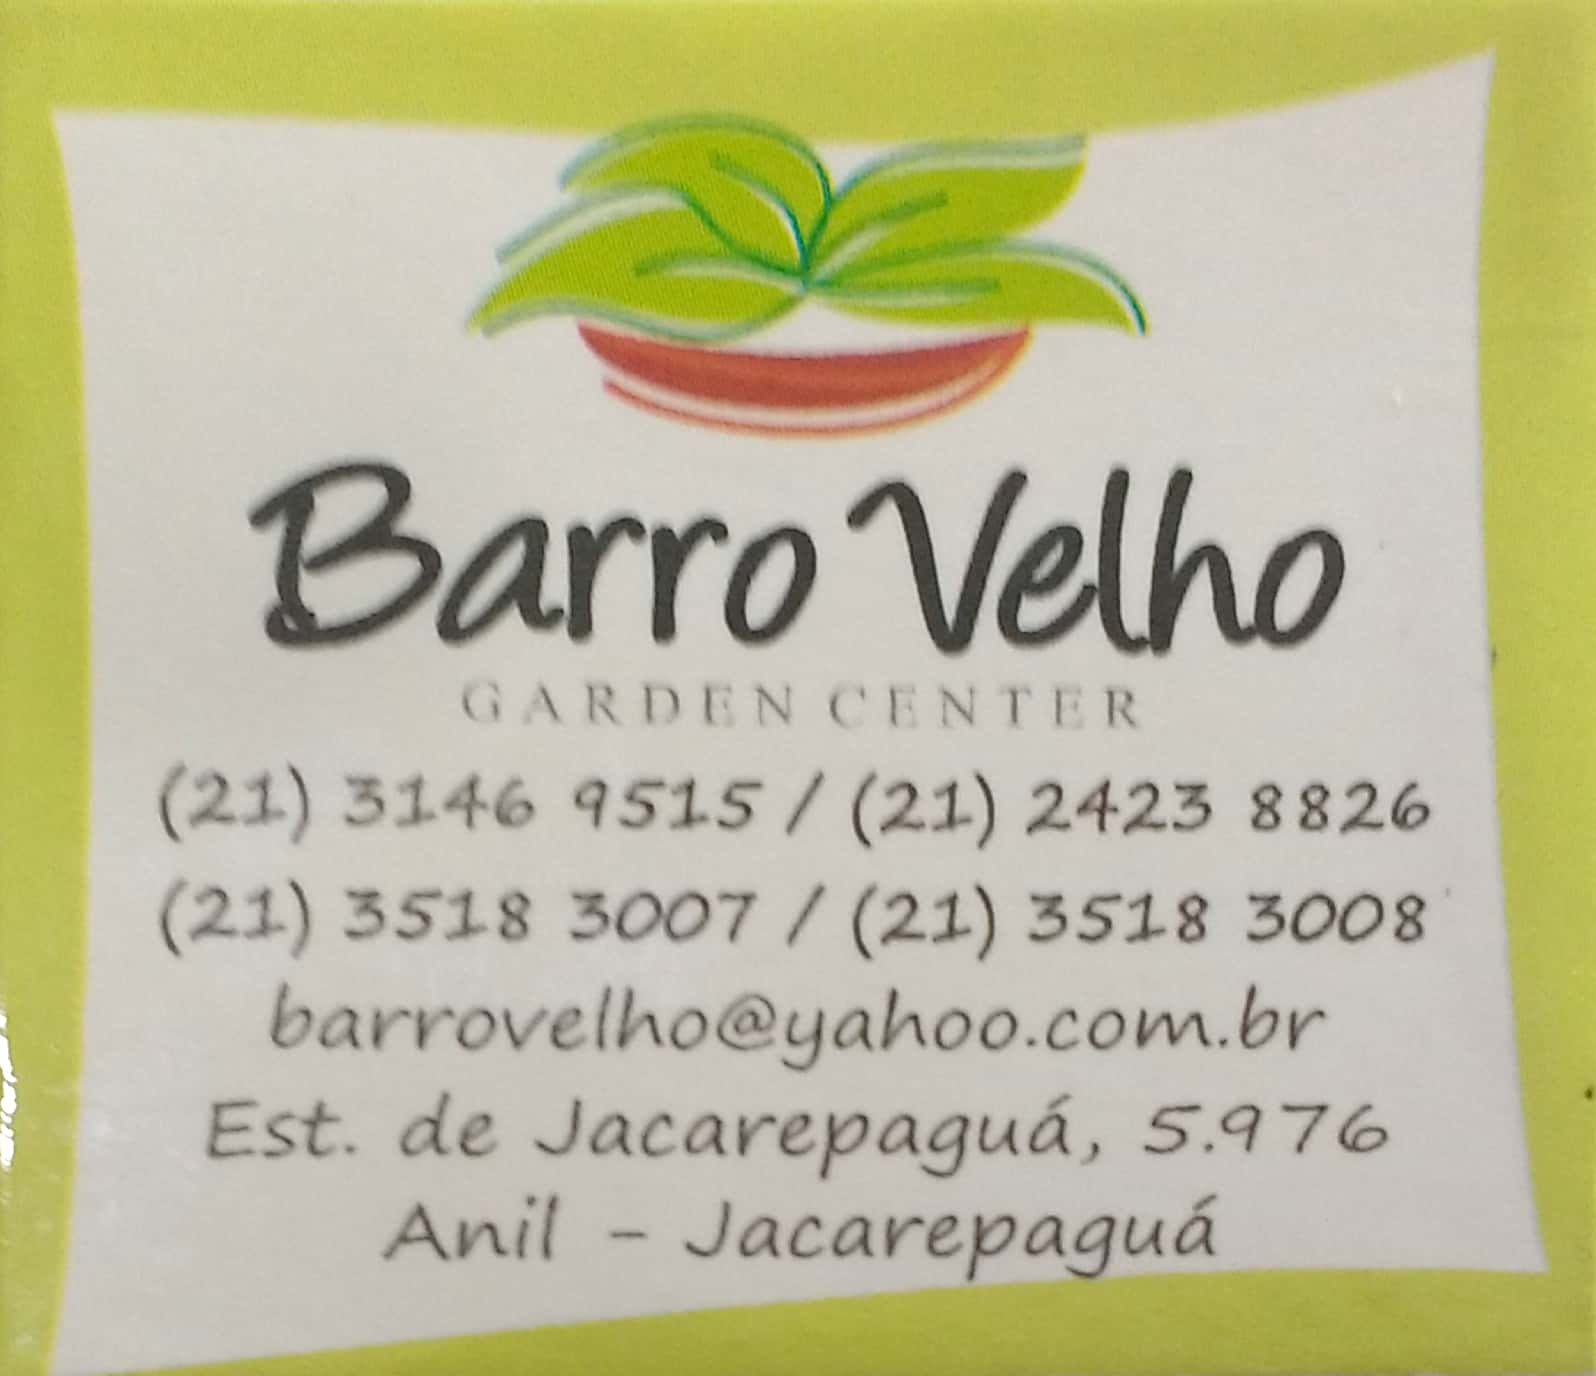 Barro Velho Garden Center